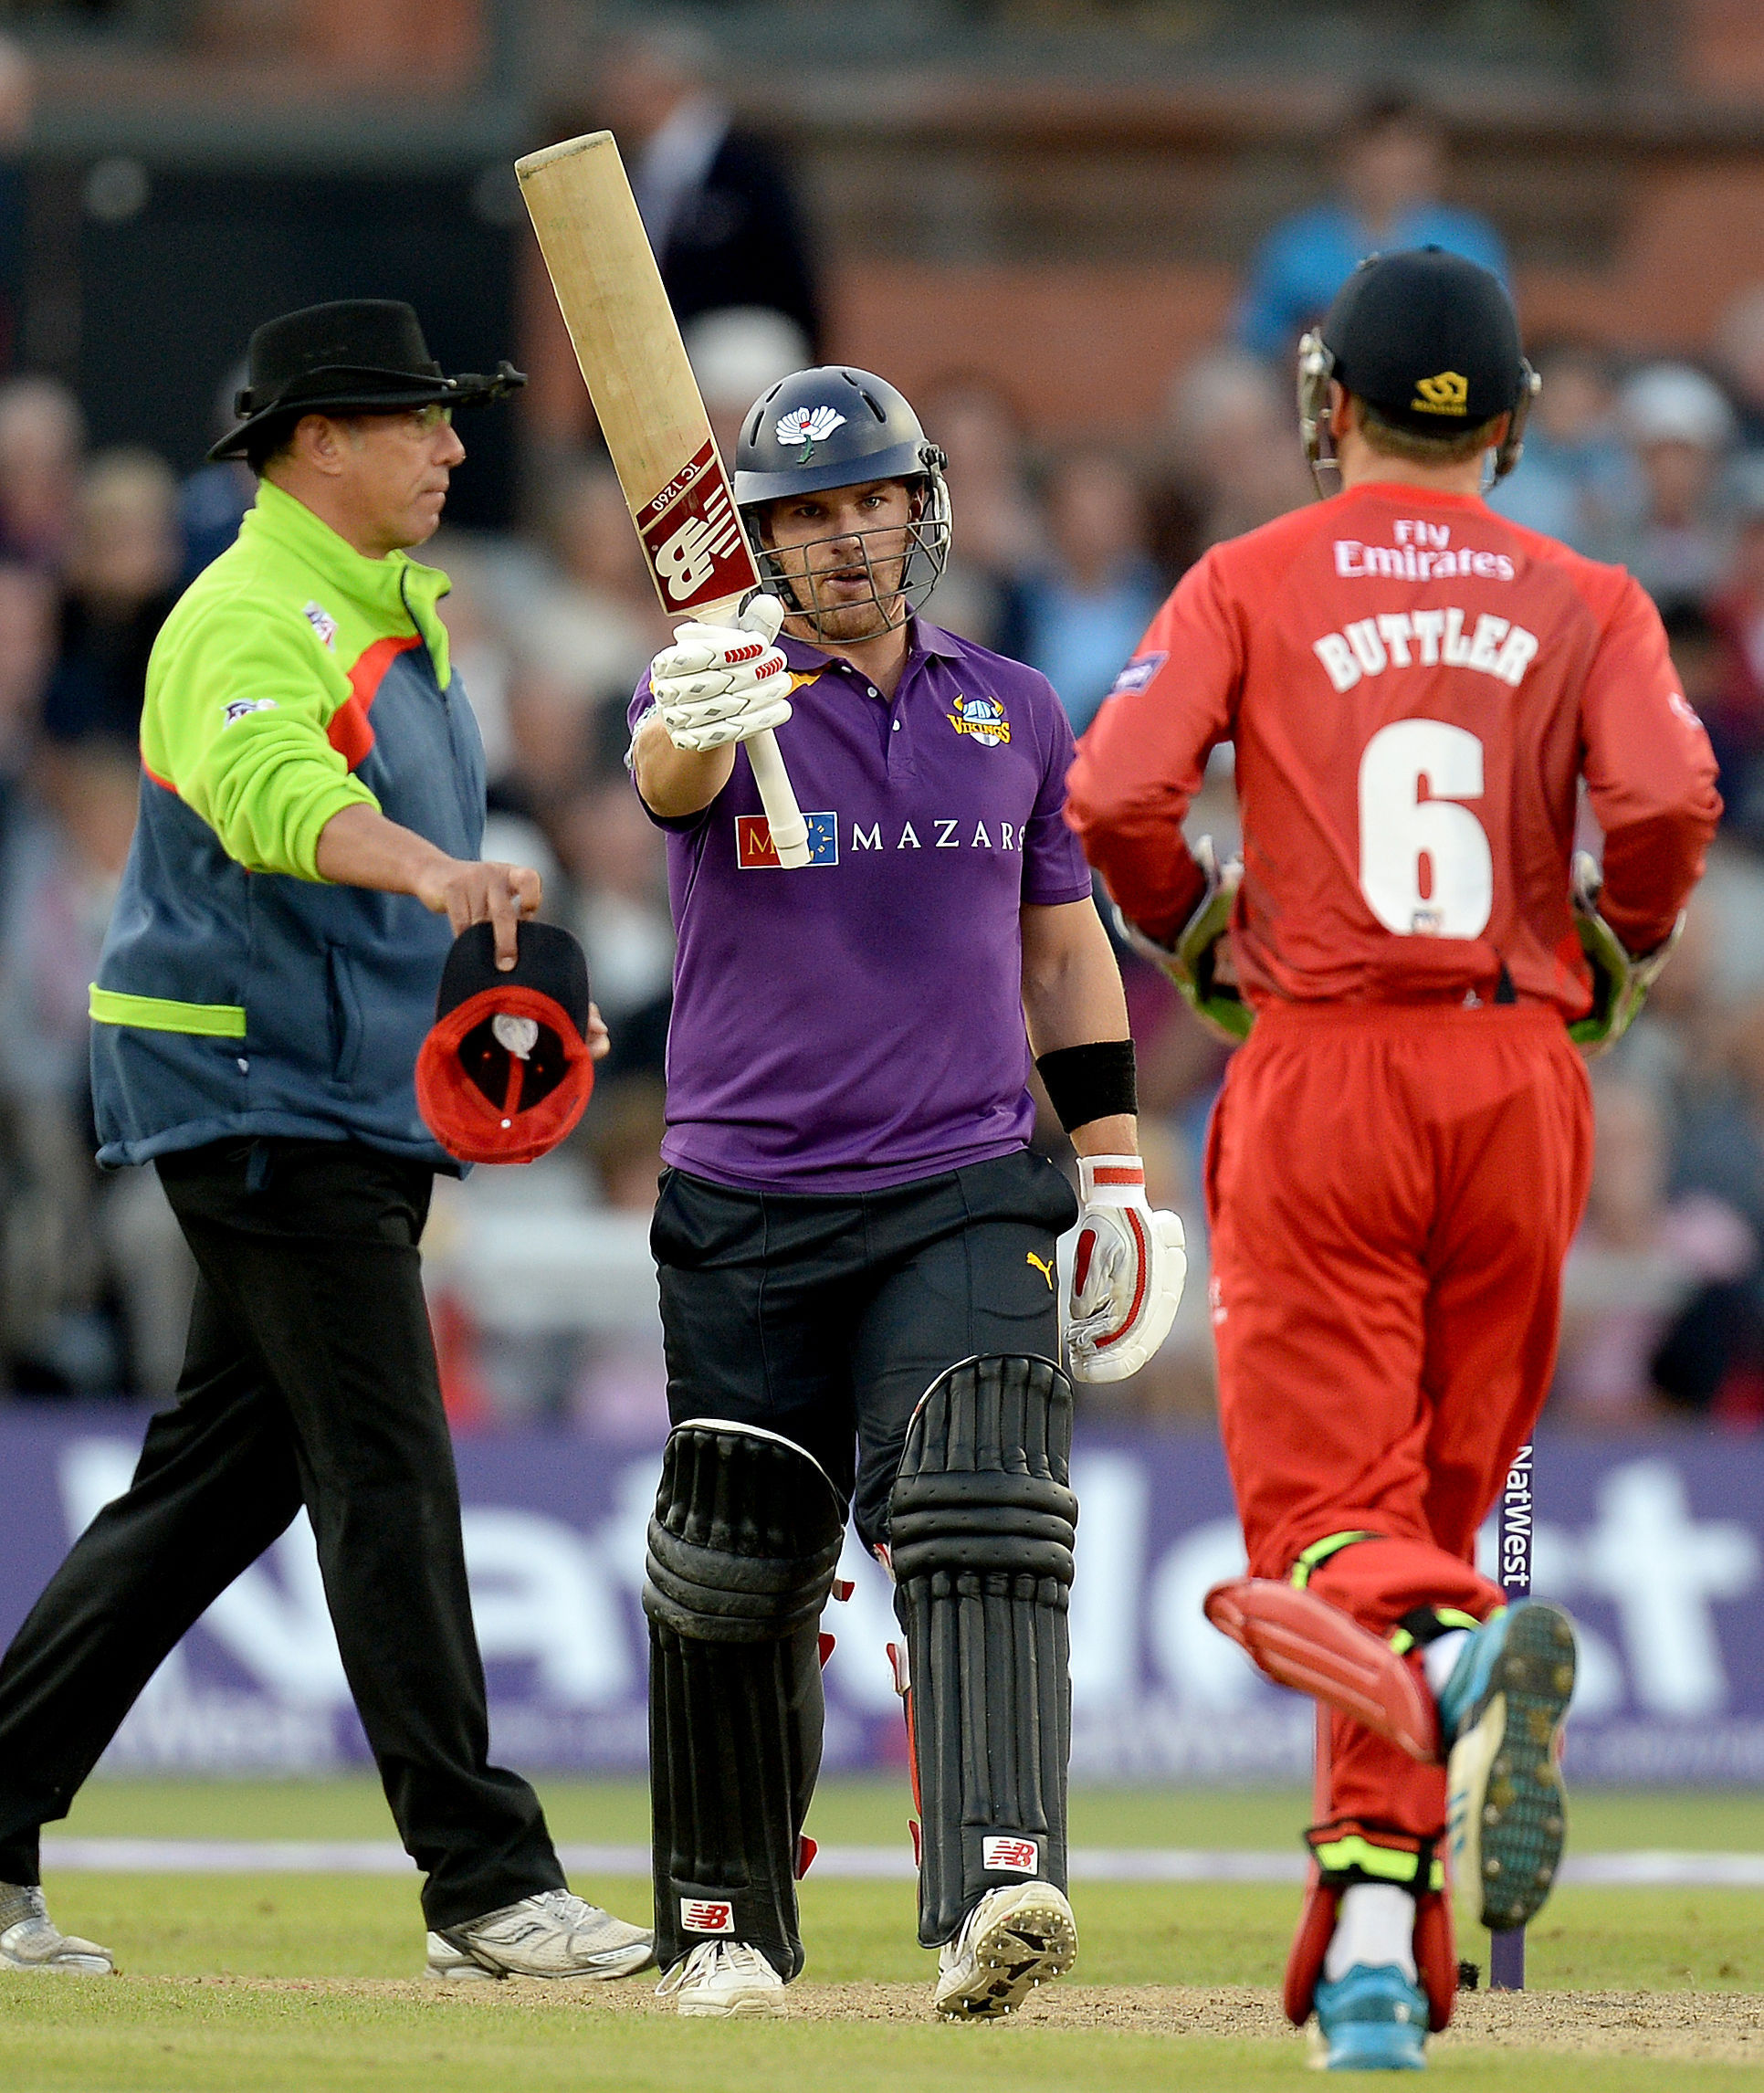 Yorkshire Vikings Aaron Finch (centre) celebrates his half century against Lancashire Lightning,during the NatWest T20 Blast match at Emirates Old Trafford, Manchester.